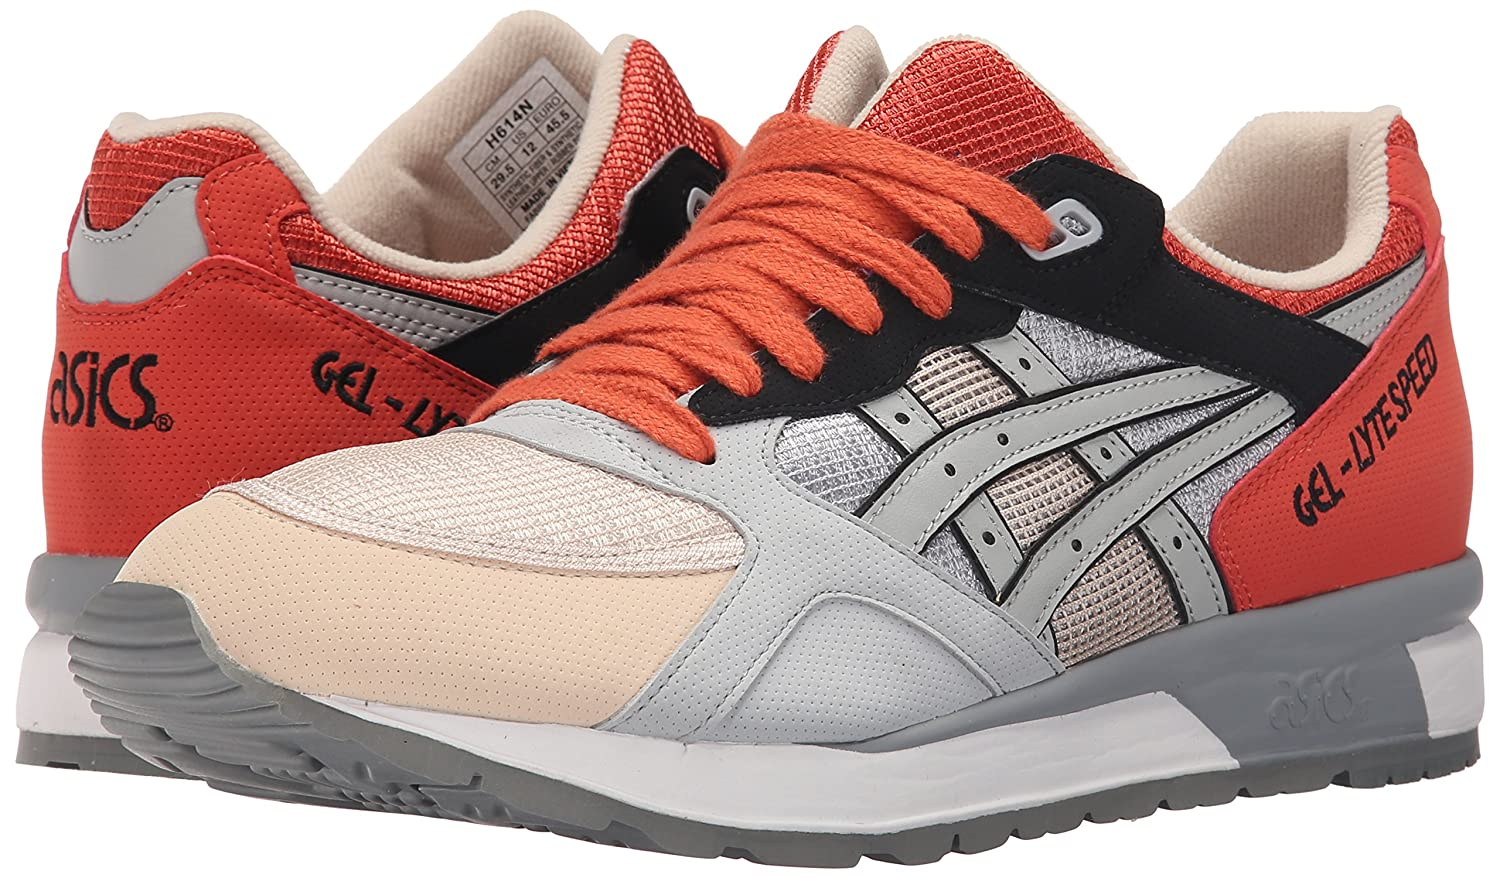 ASICS GEL Lyte Speed Retro Running Shoe B00ZQ9D0WA 4 M US|Light Grey/Light Grey